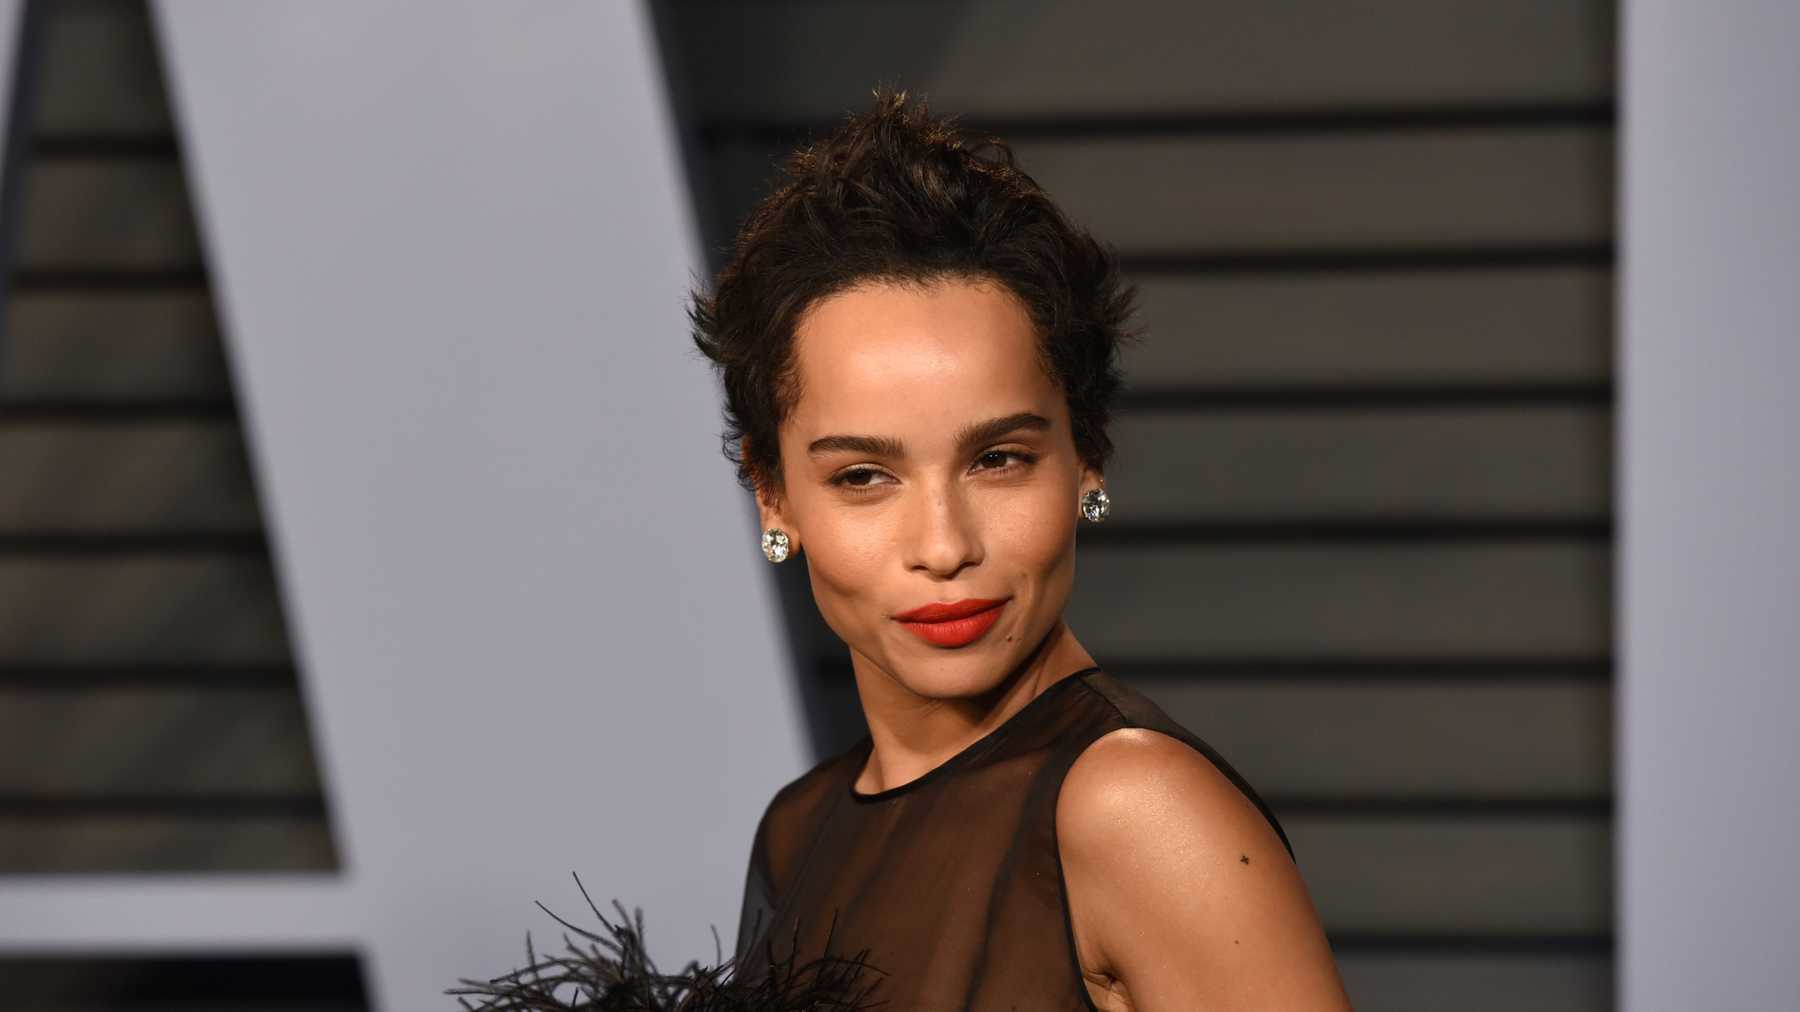 Zoe Kravitz Starring In The High Fidelity Tv Series Movies